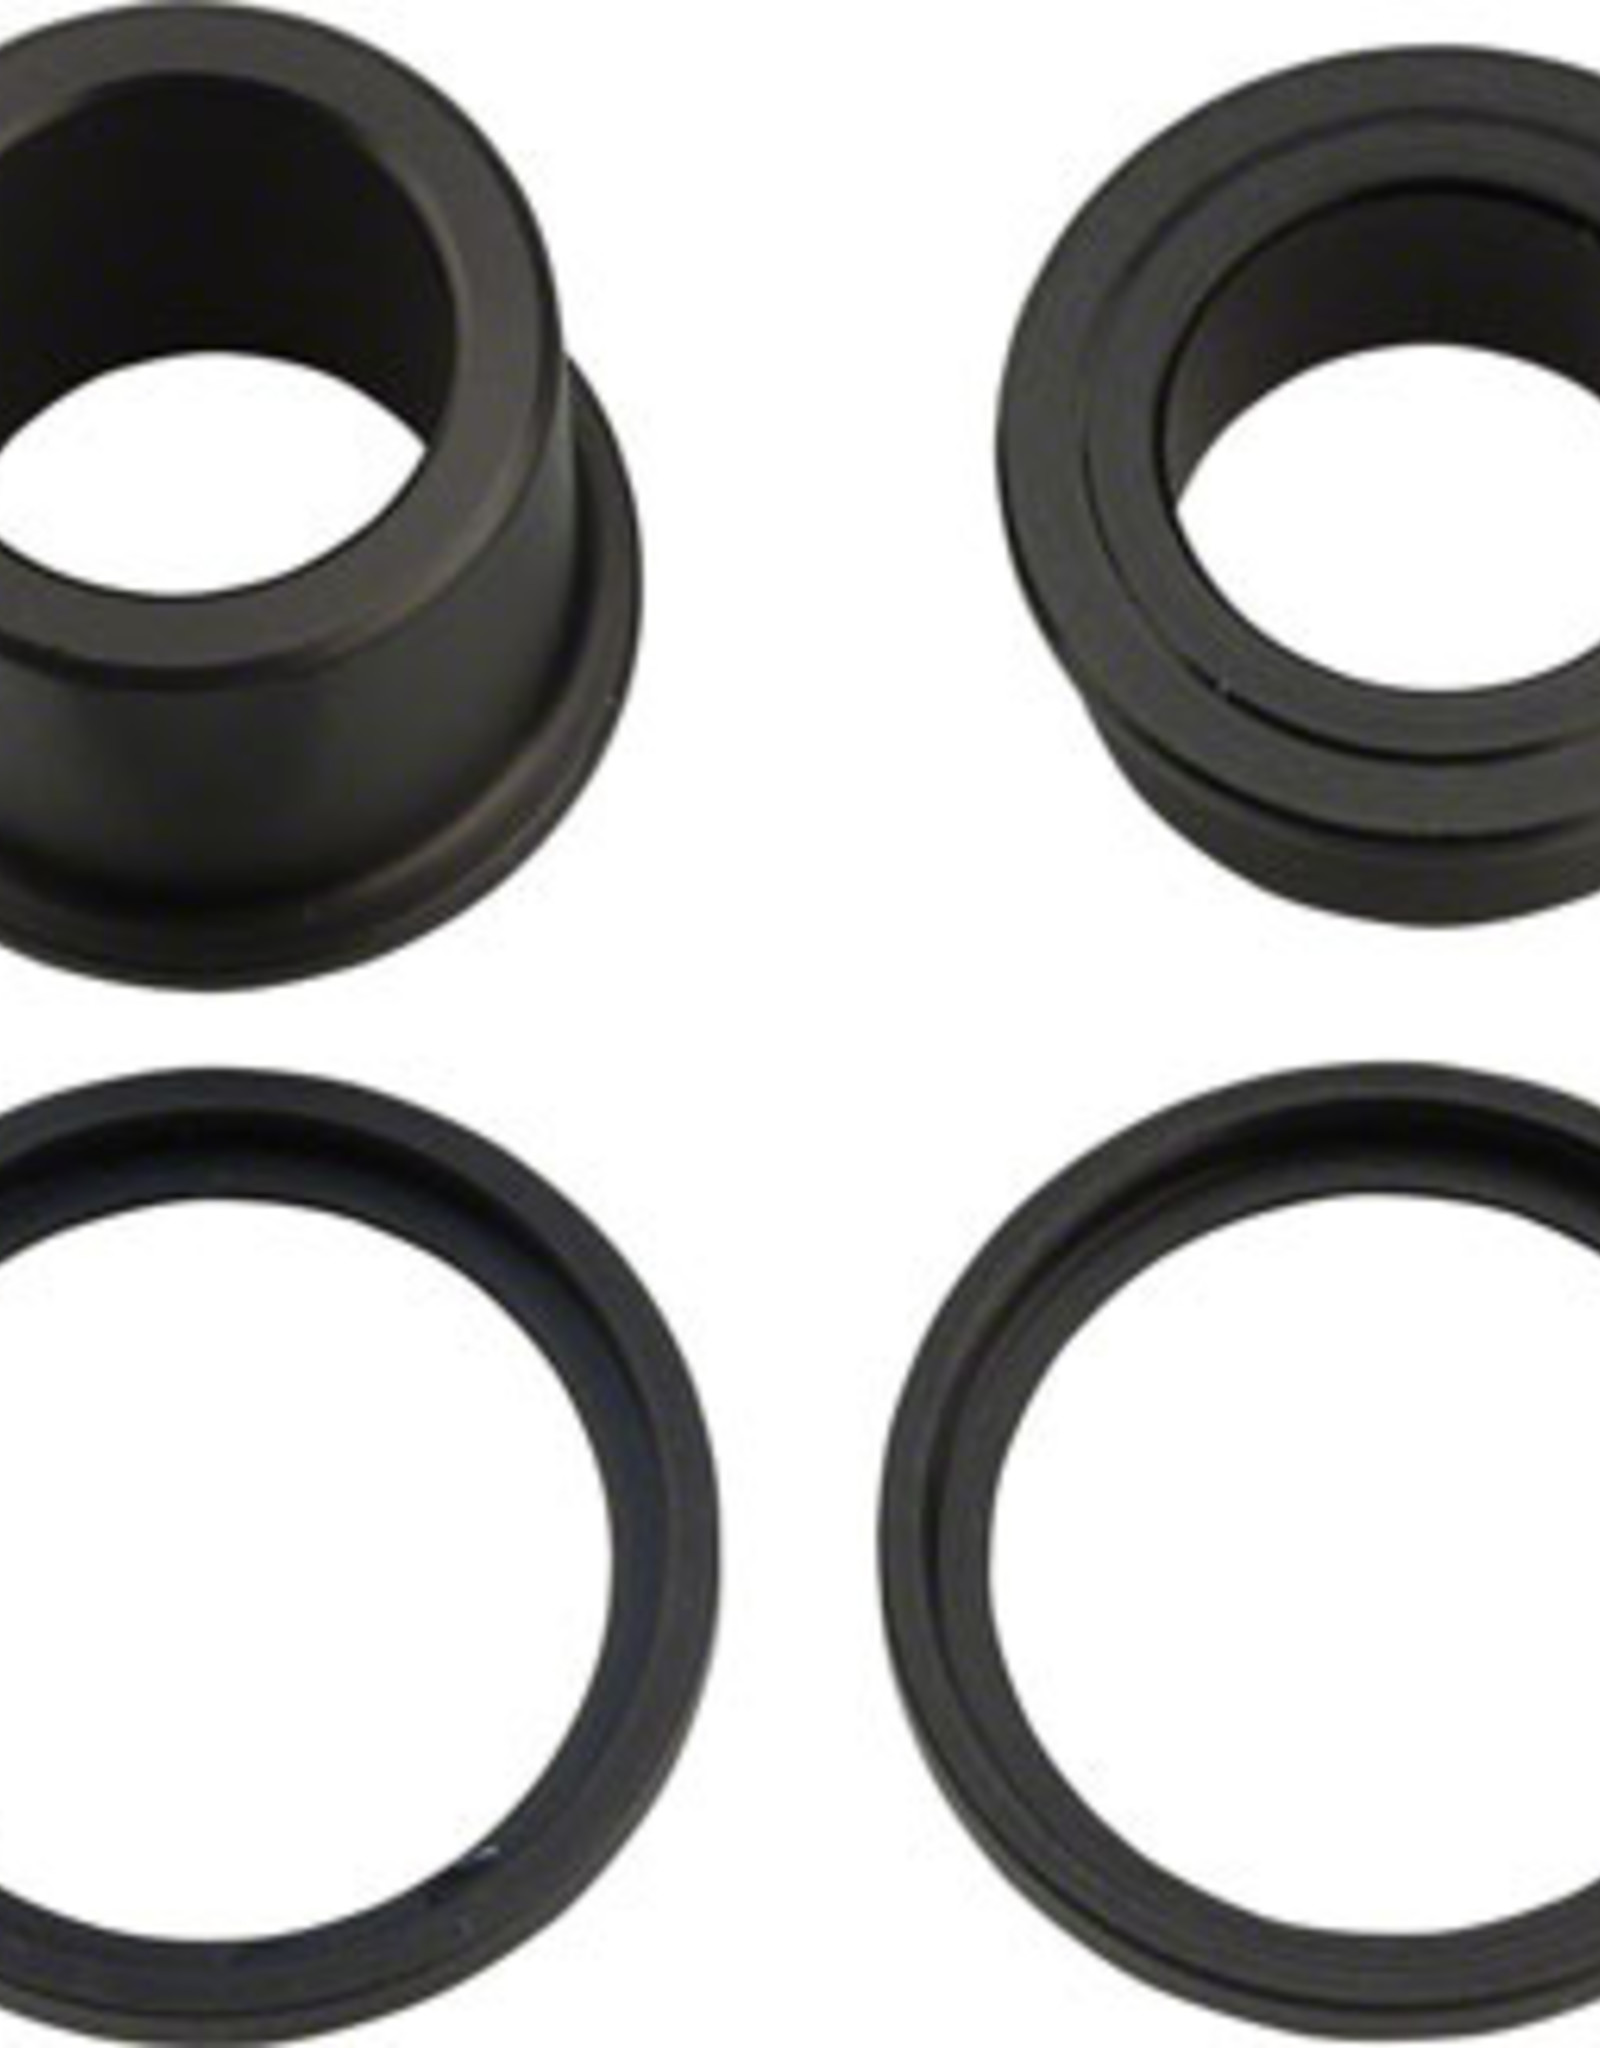 dt swiss DT Swiss 350/370 15x100mm End Cap Kit: Includes Right and Left End Caps and 2 Retainer Rings